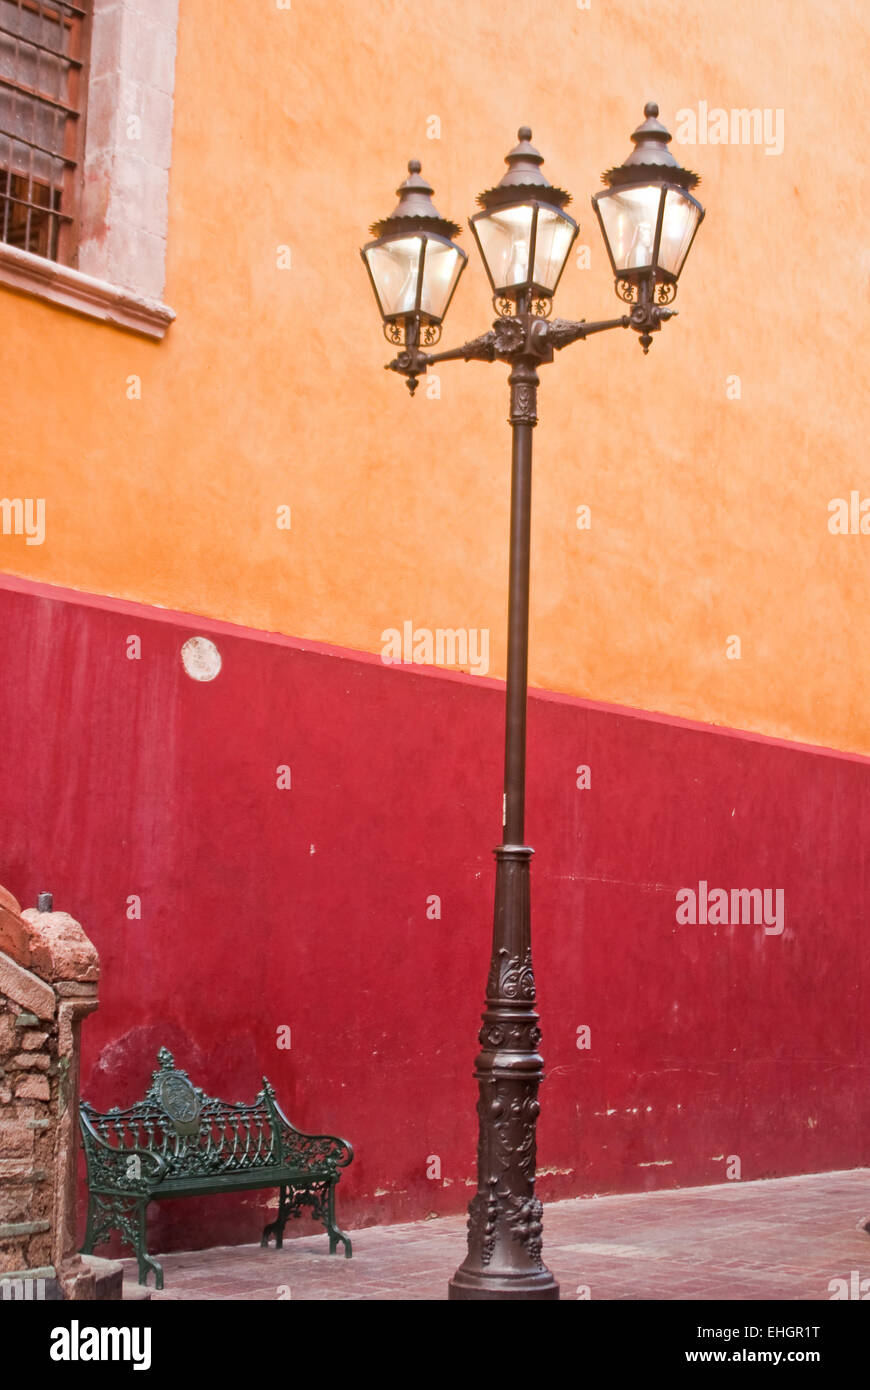 Lampost and bench Mexican streetscene - Stock Image